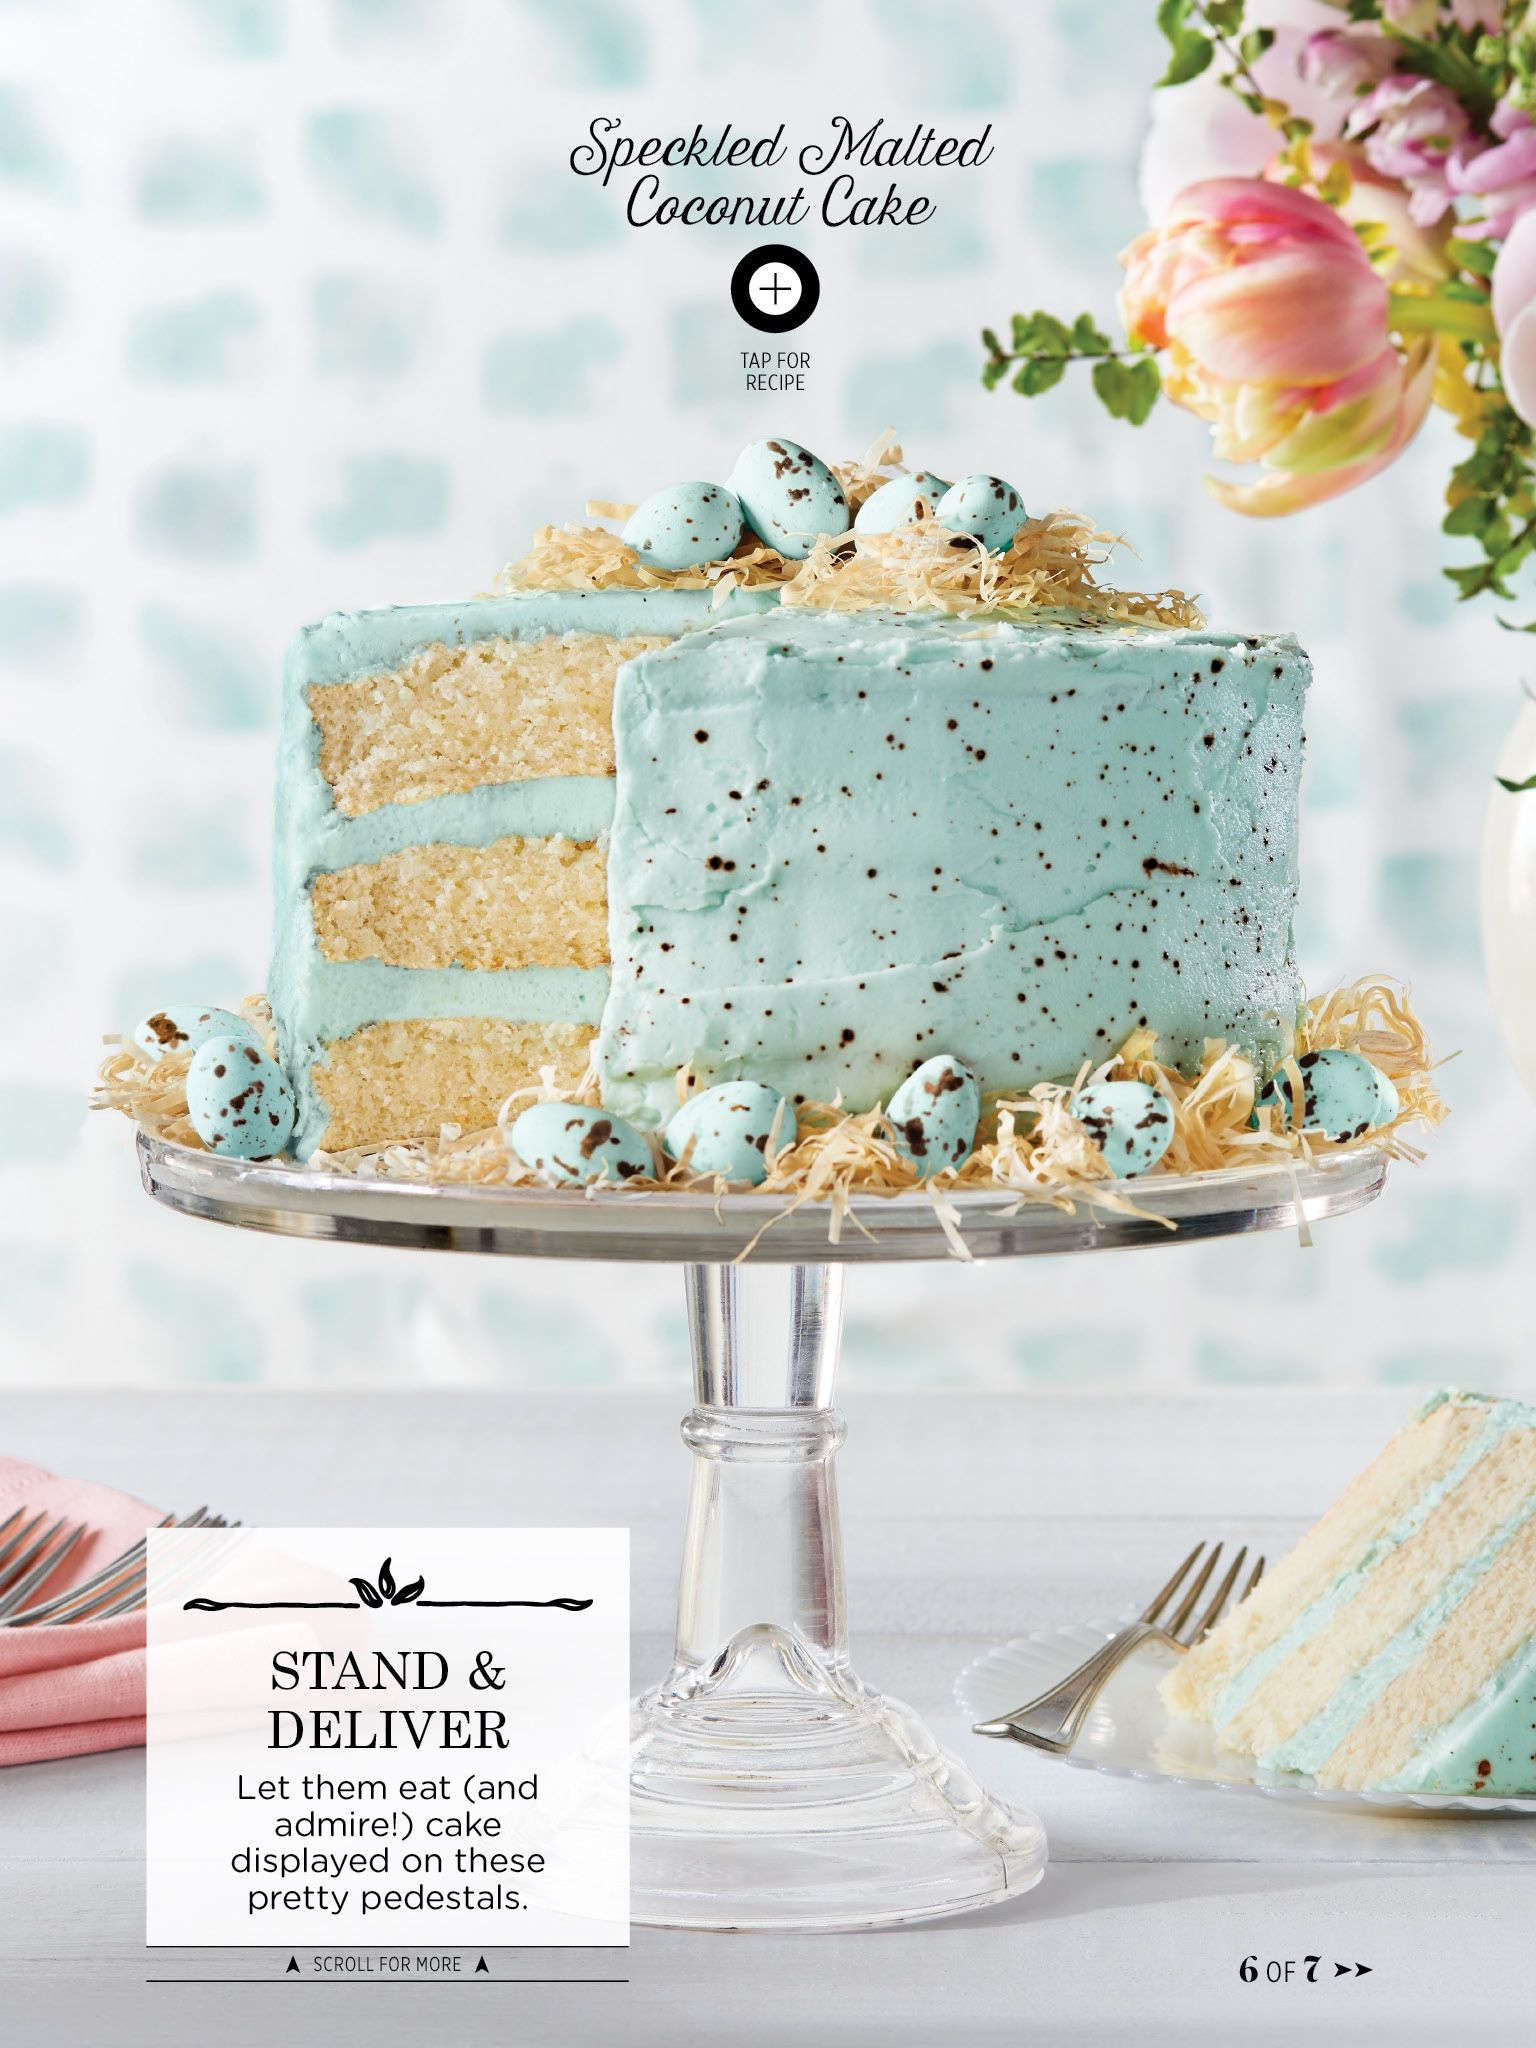 I've got heart eyes for this gorgeous Soeckled Malted Cococnut Cake from the April 2016 issue of @countryliving.   http://bit.ly/1izmcxL